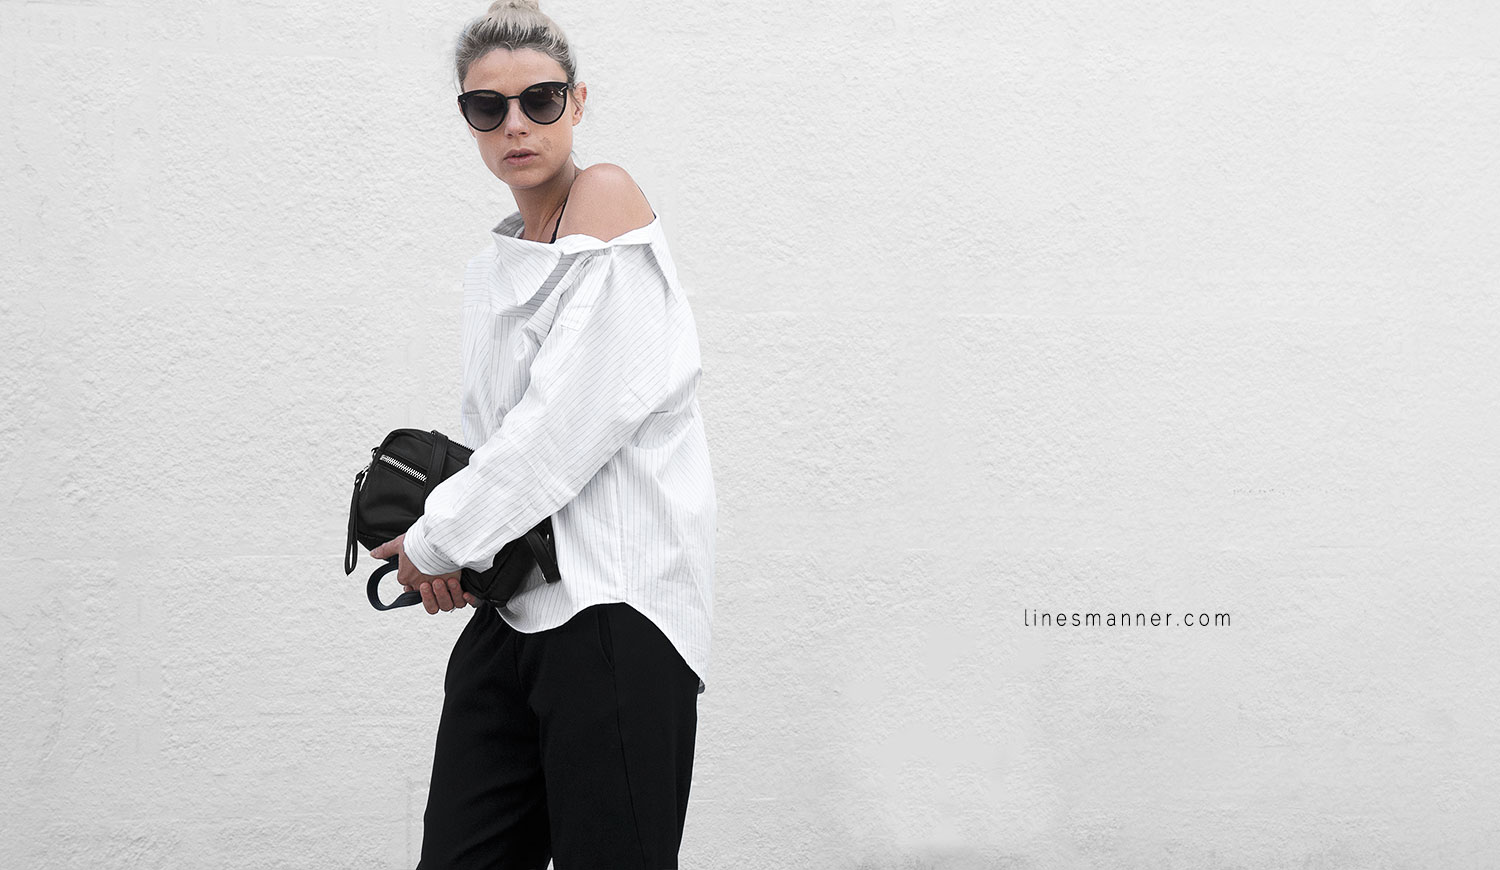 Lines-Manner-Simplicity-Off_shoulder-Monochrome-Noway_Monday-Details-Edgy6Backward-Sleek Statement_piece-Pinstripe-Business-Shirt-Minimal-Essentials-Outfit-Fashion-Minimal_fashion-Slides-Everlane-2